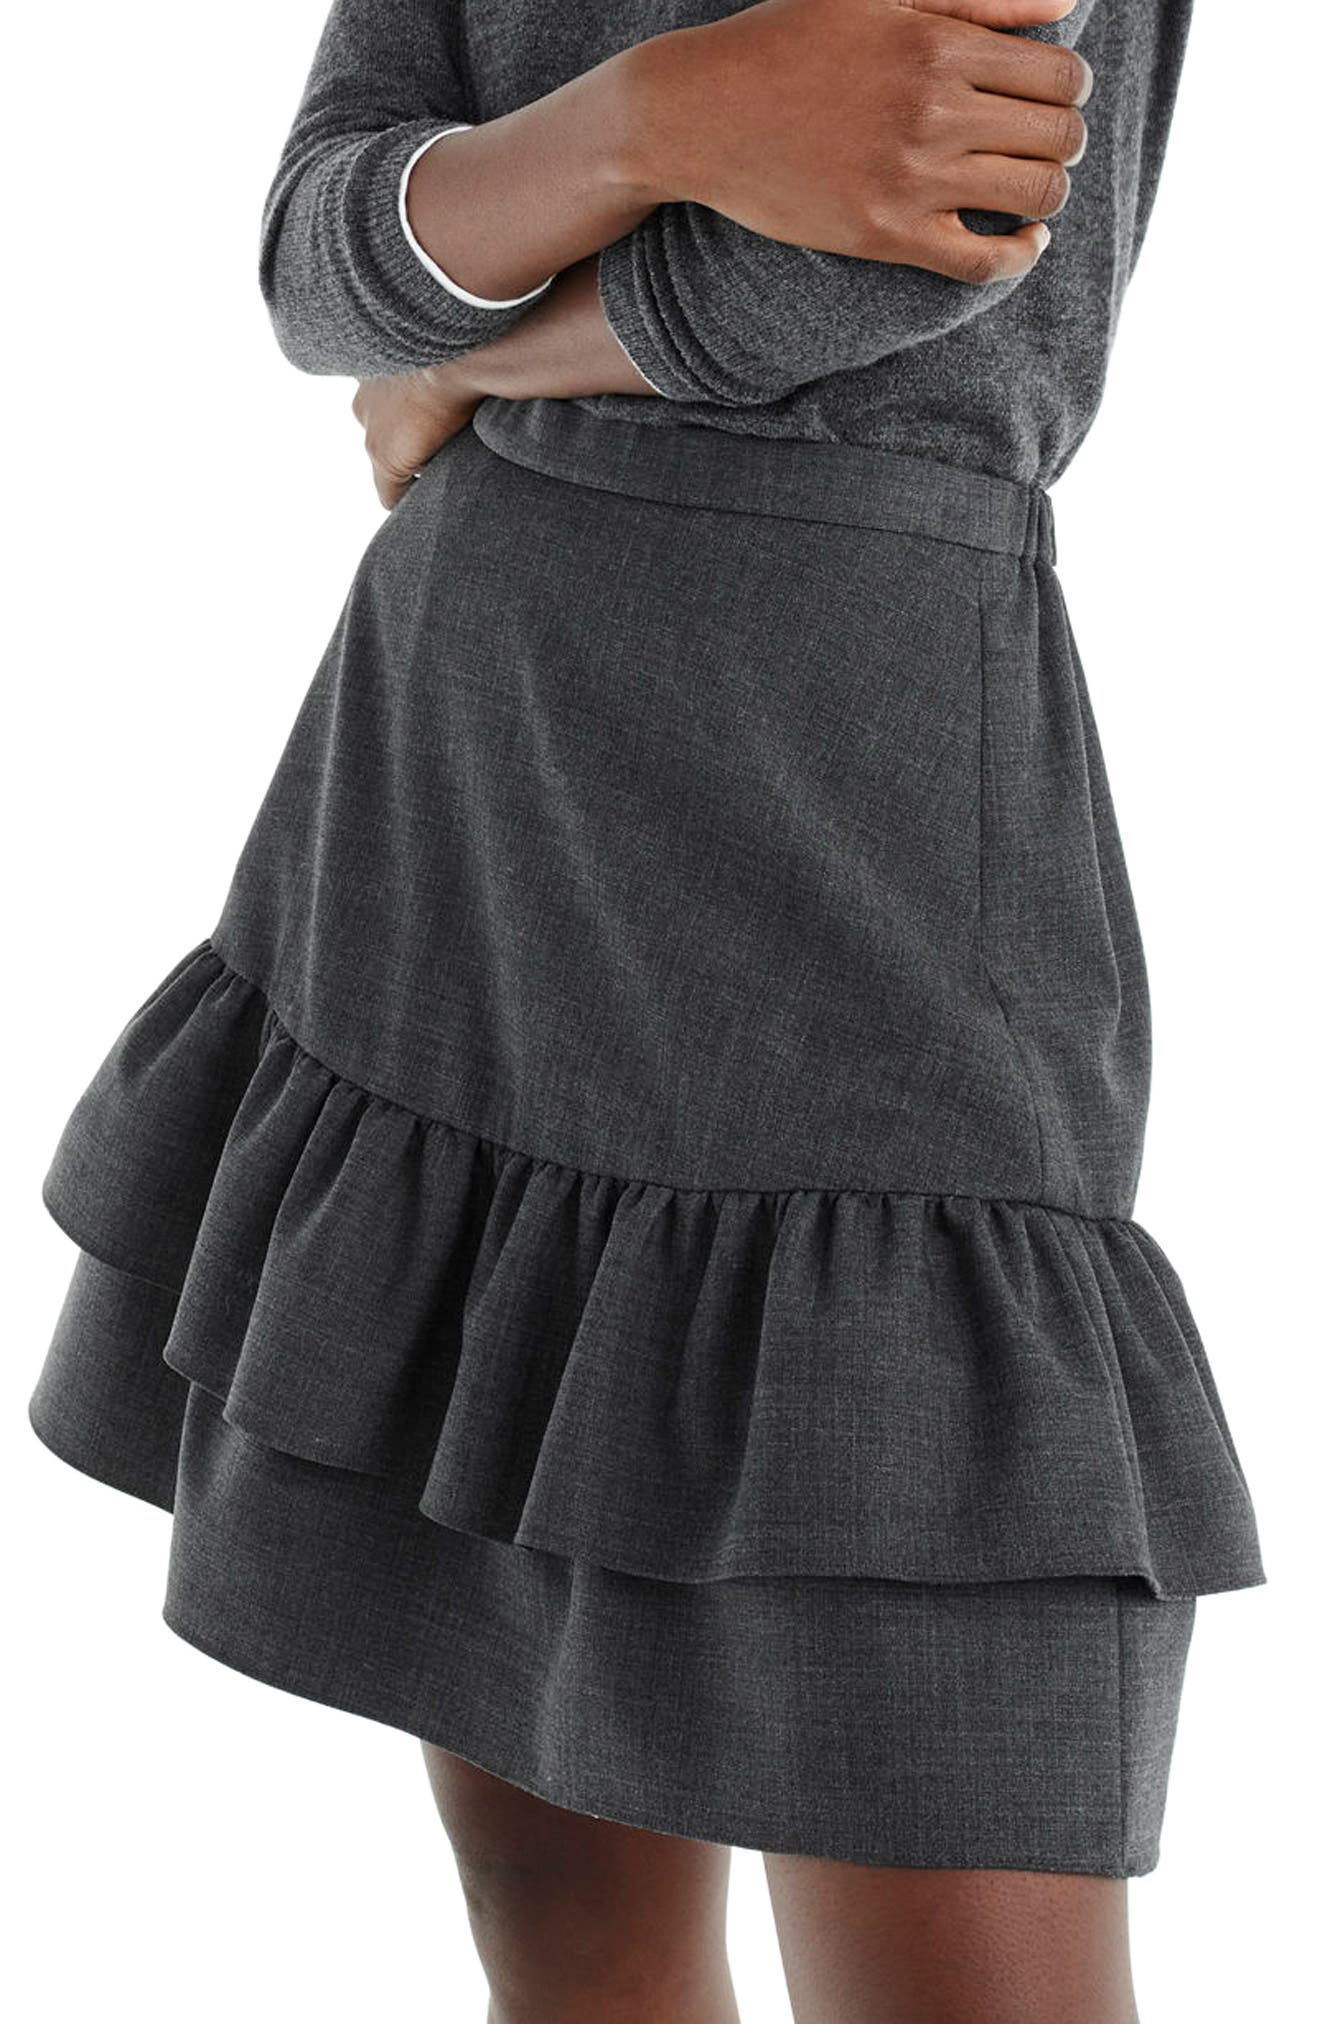 Wool Flannel Ruffle Skirt,                             Alternate thumbnail 3, color,                             Heather Carbon